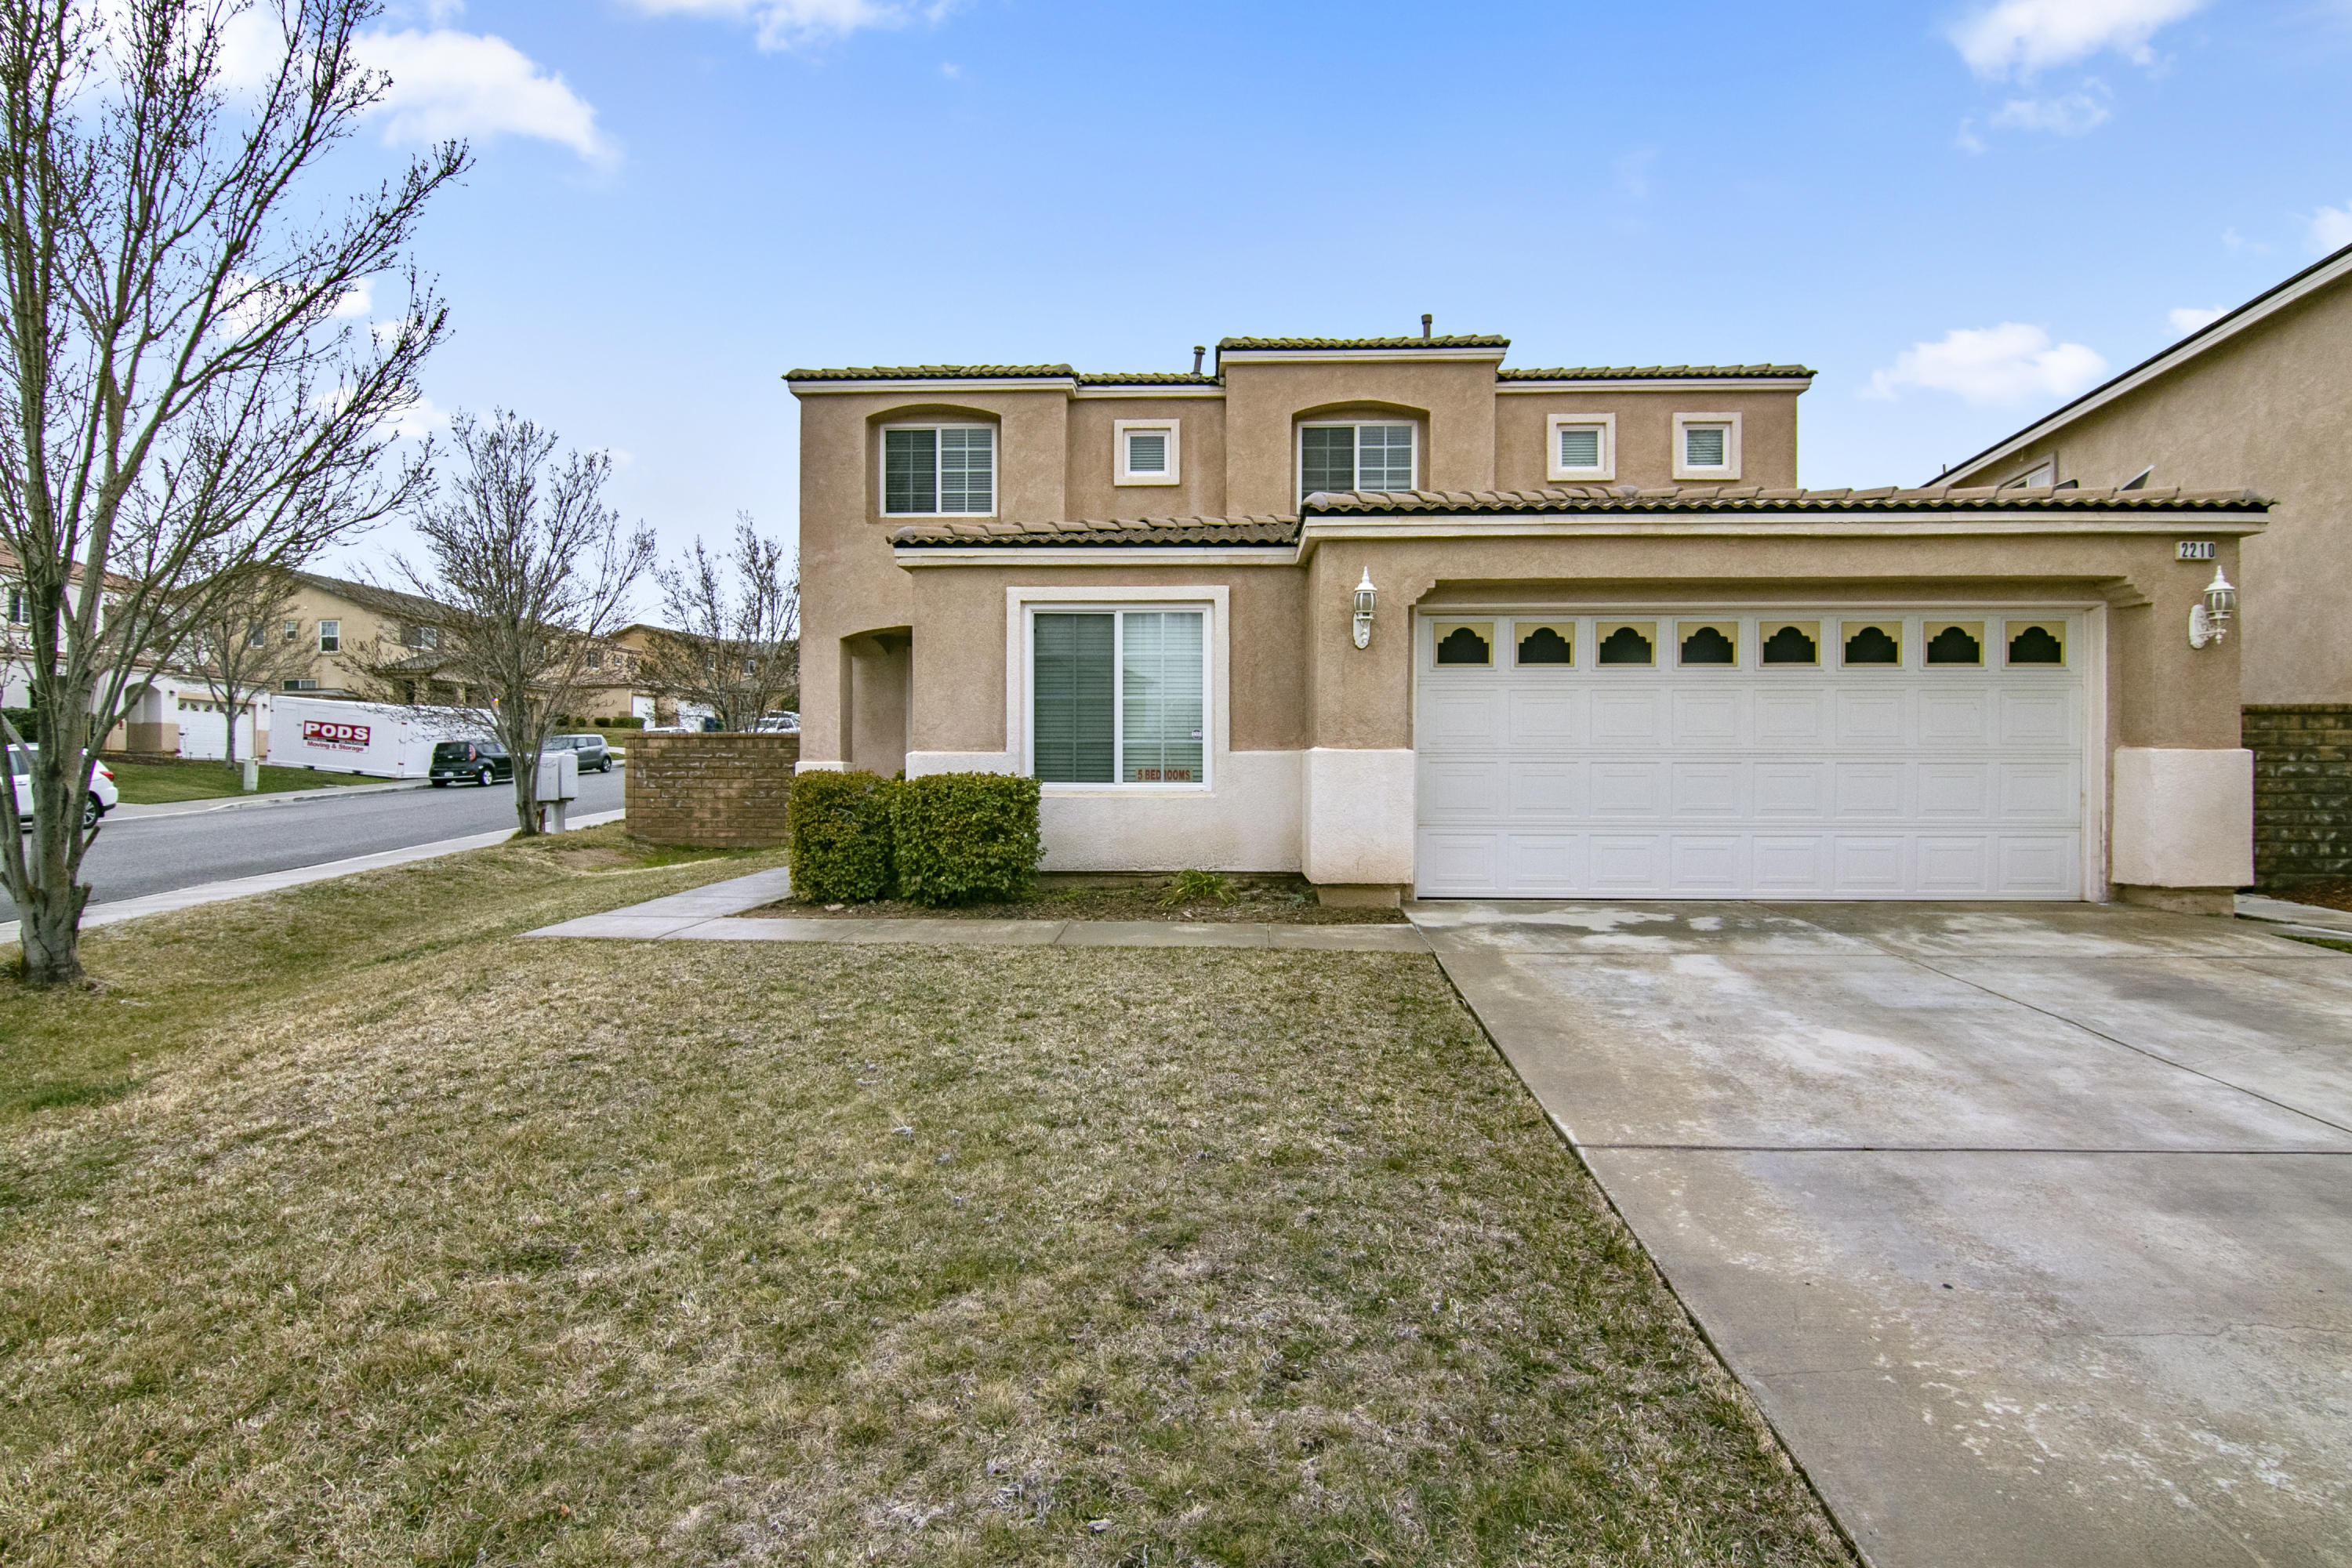 2210  Cranshaw Lane, Palmdale, California